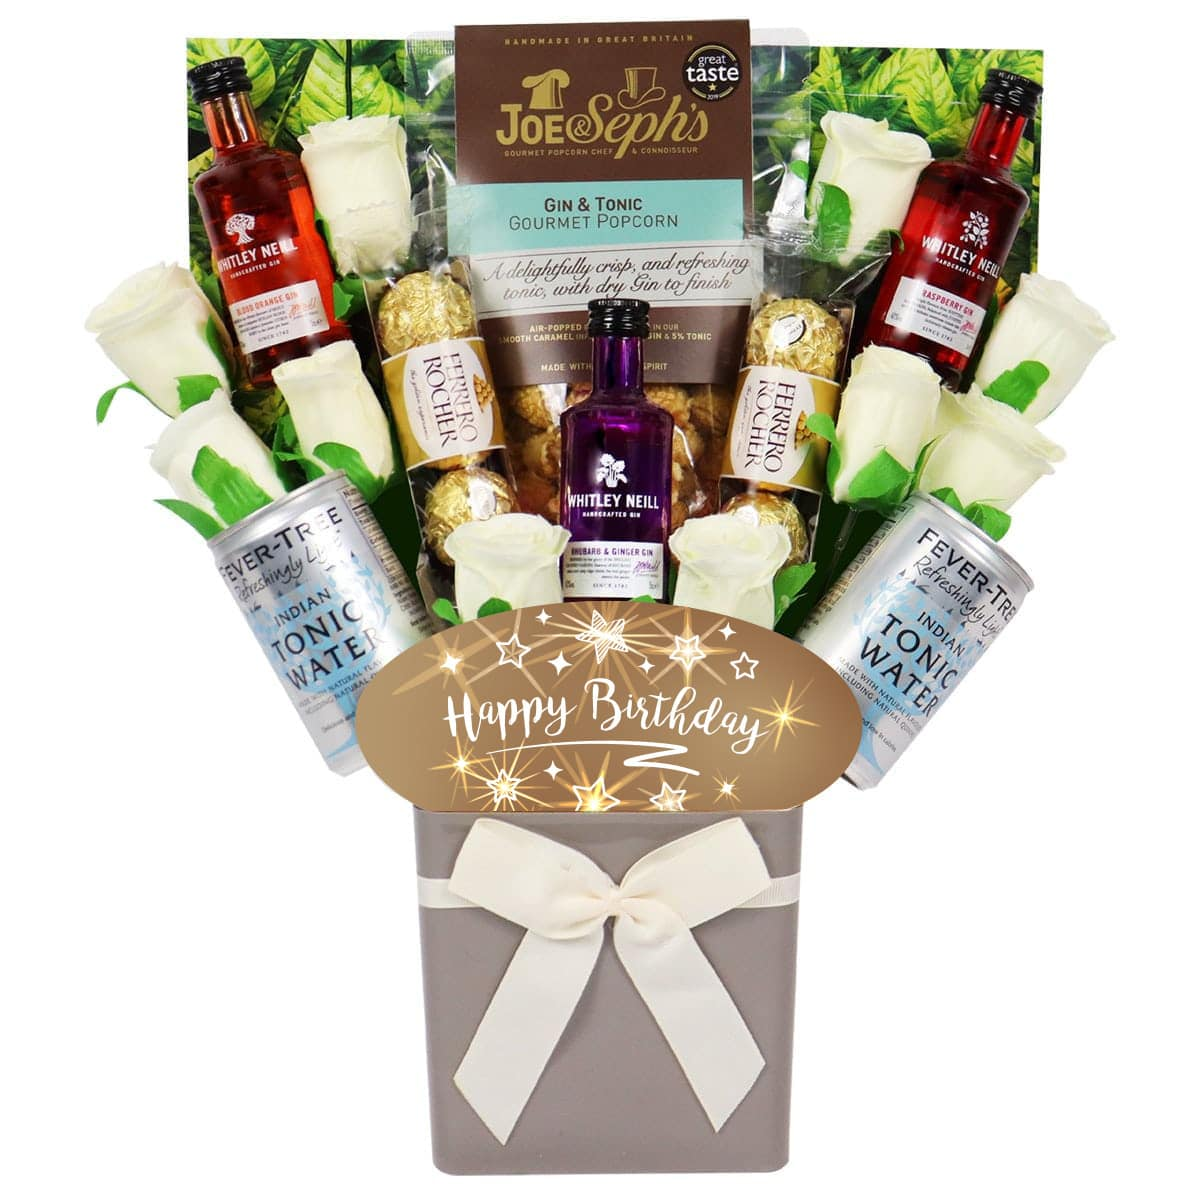 The Happy Birthday Whitley Neill Gin & Tonic Bouquet